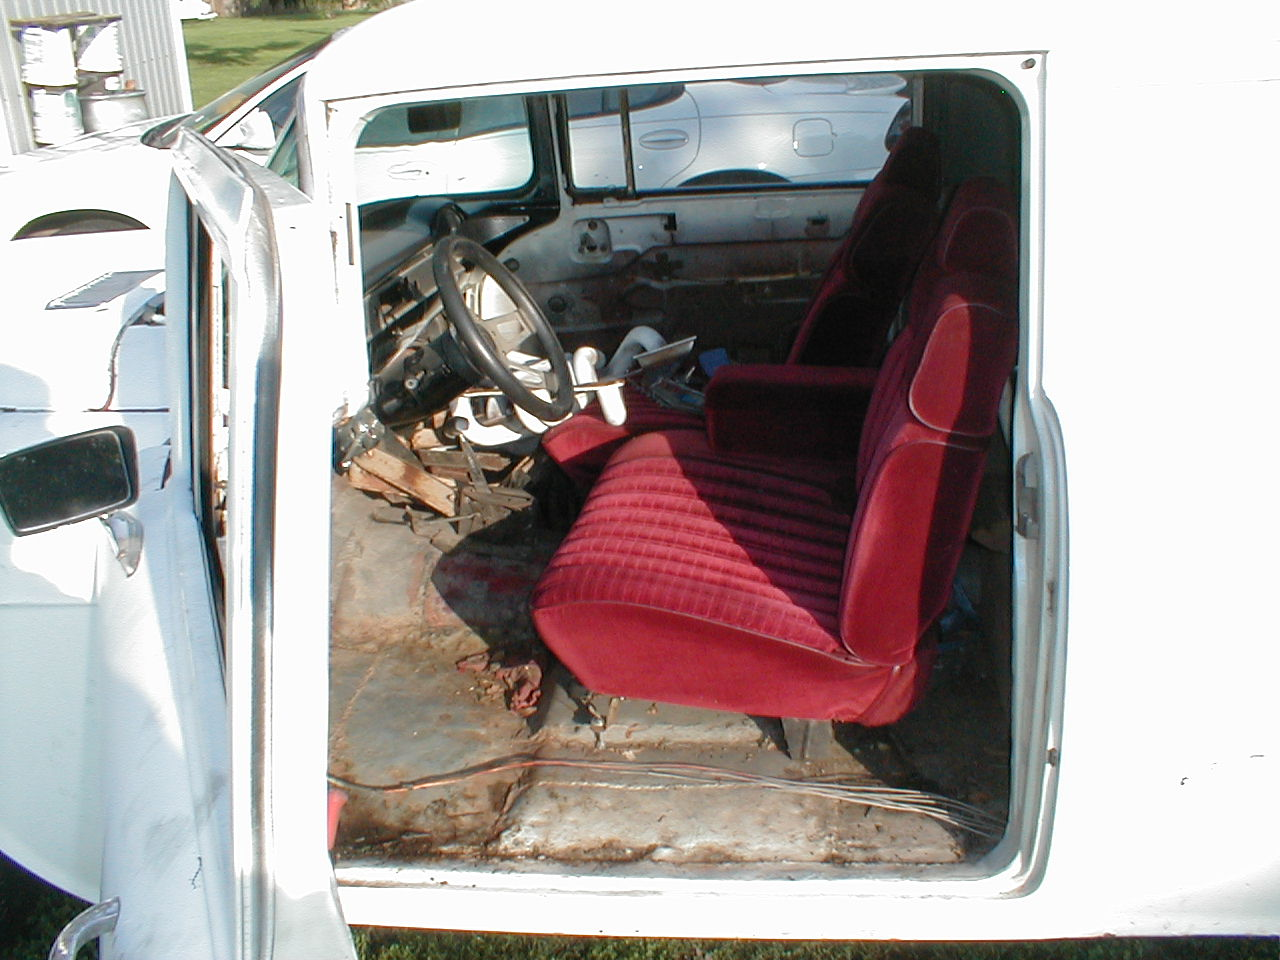 1955 Chevy Sedan Delivery Dash Wiring We Install A Disk Brakes On The Front And Replaced Engine Owner Will Complete Some Other Repairs May Bring It Back For